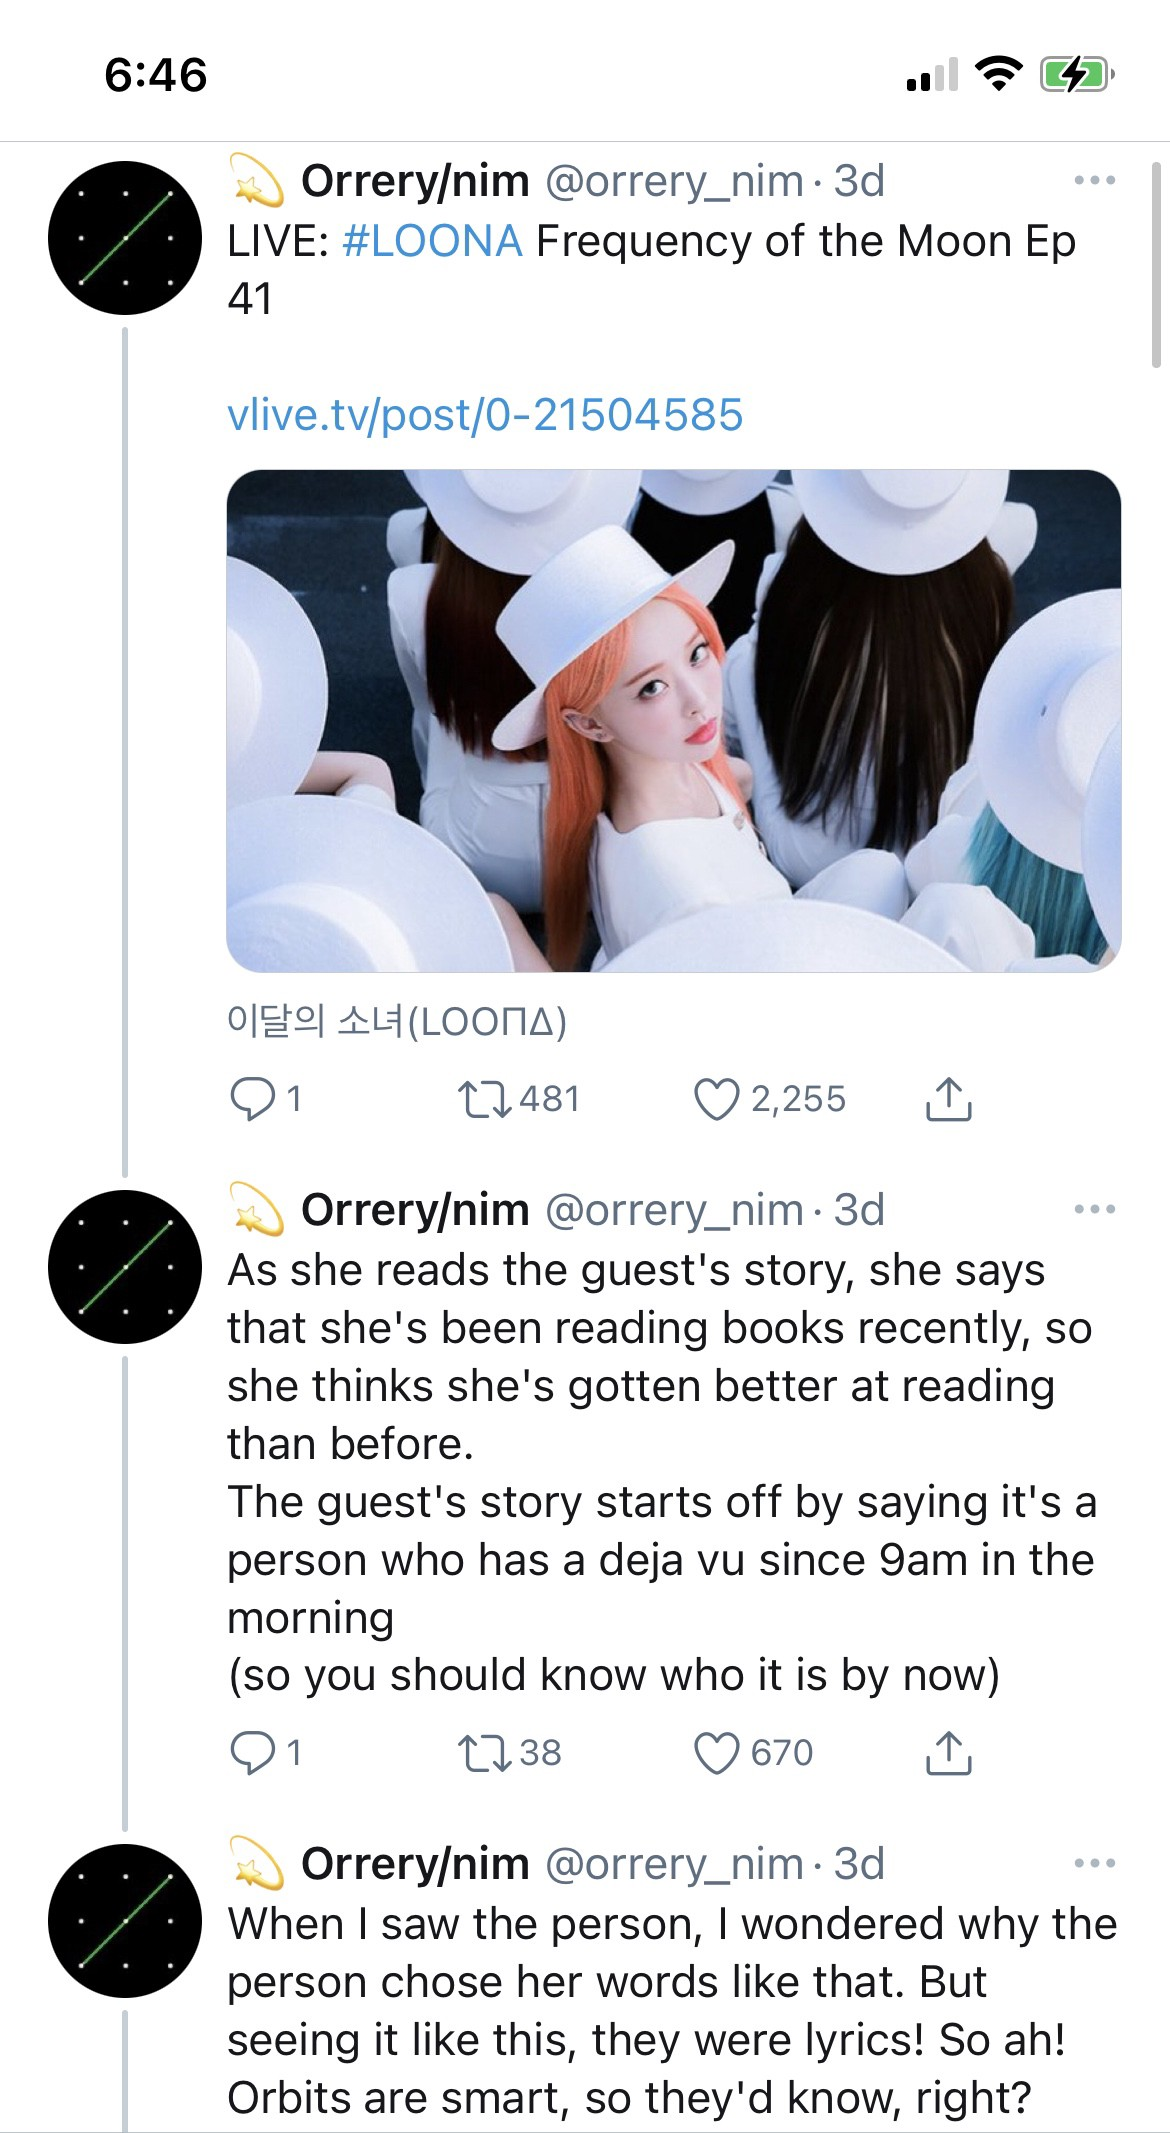 A twitter thread from user @orrery_nim containing English translations